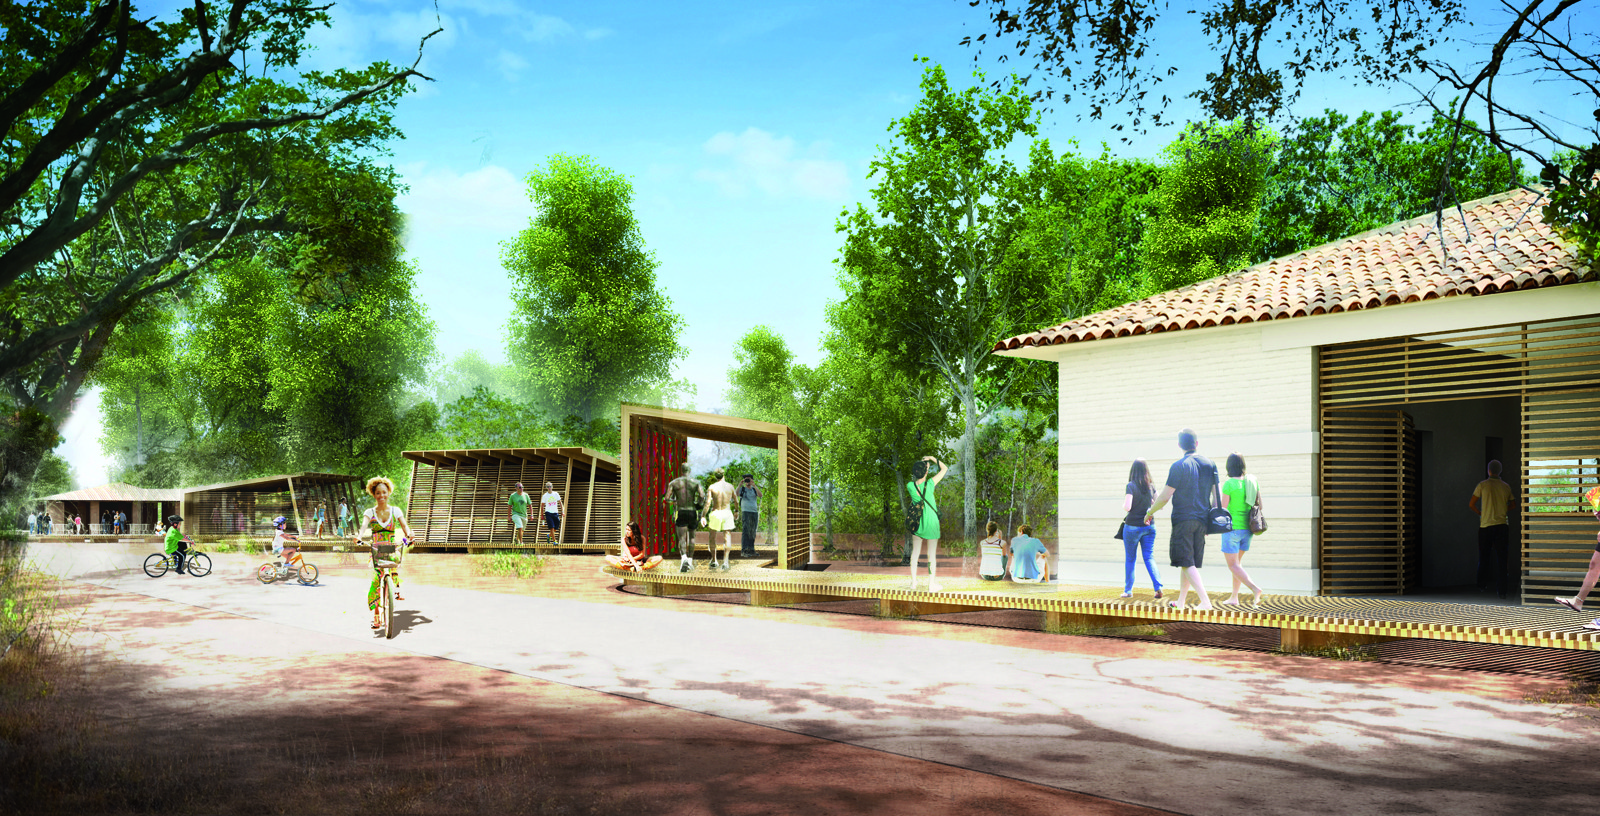 National_Parks_Brazil_02_Architecture_IDOM_computer_graphics_Andreia_Faley